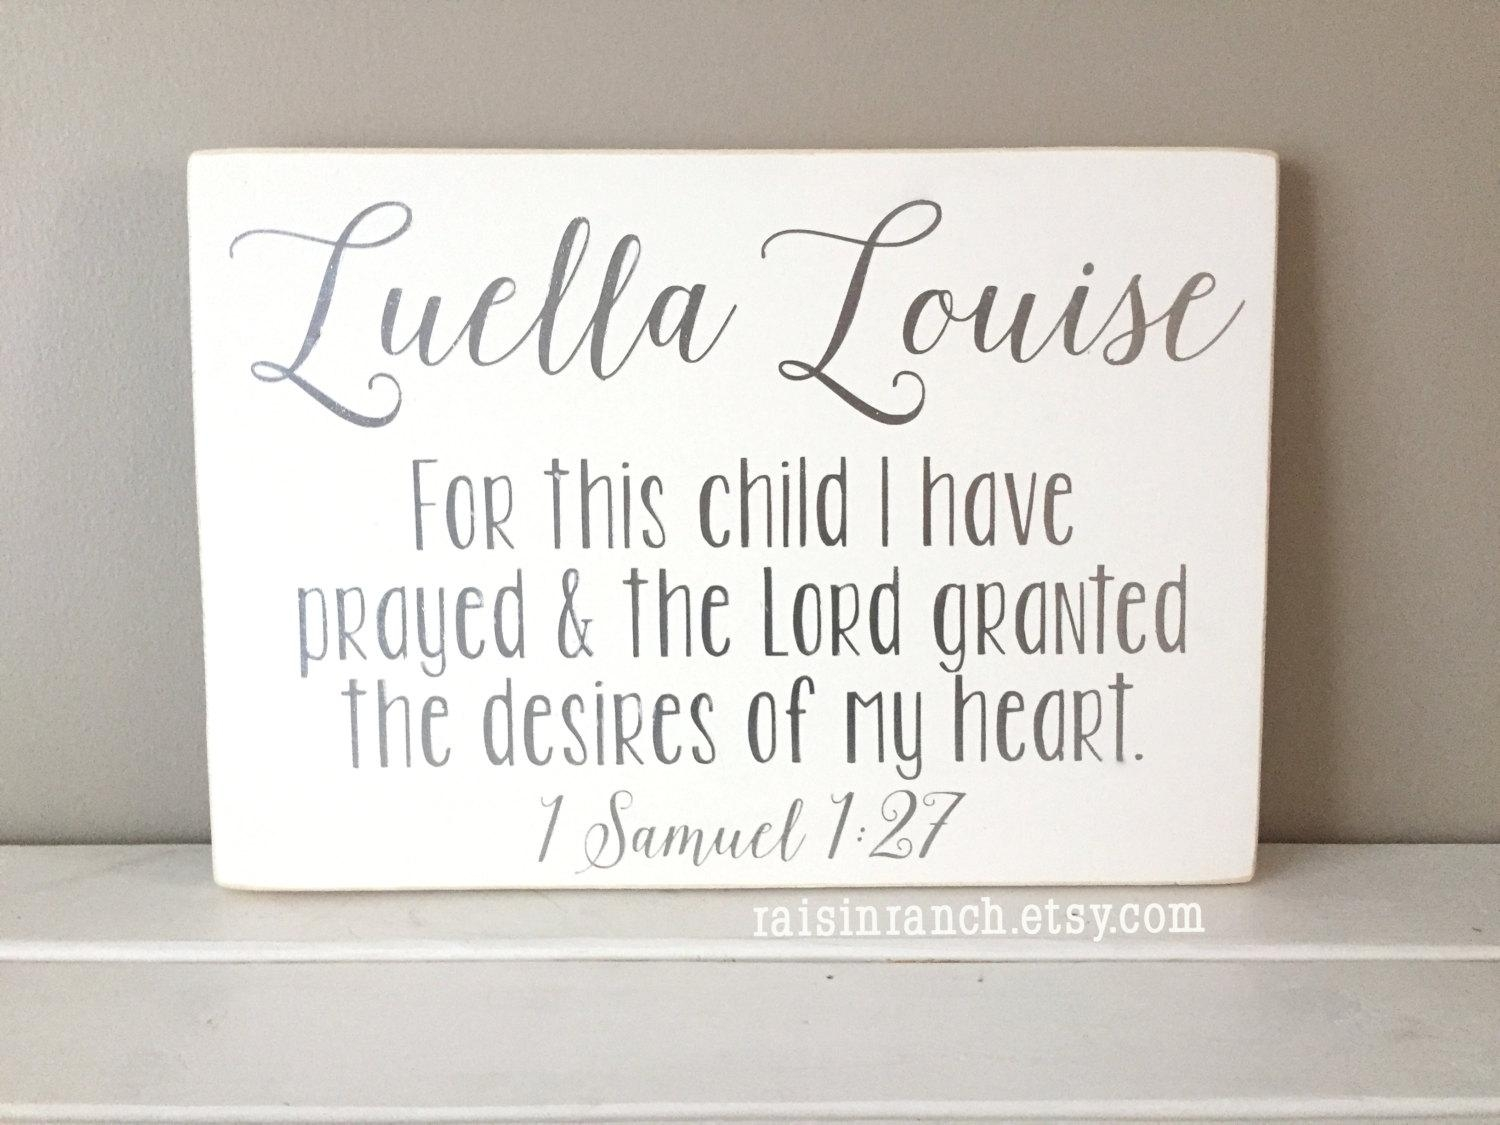 Baby Name Sign With Verse For This Child I Have Prayed And In For This Child I Have Prayed Wall Art (Image 4 of 20)